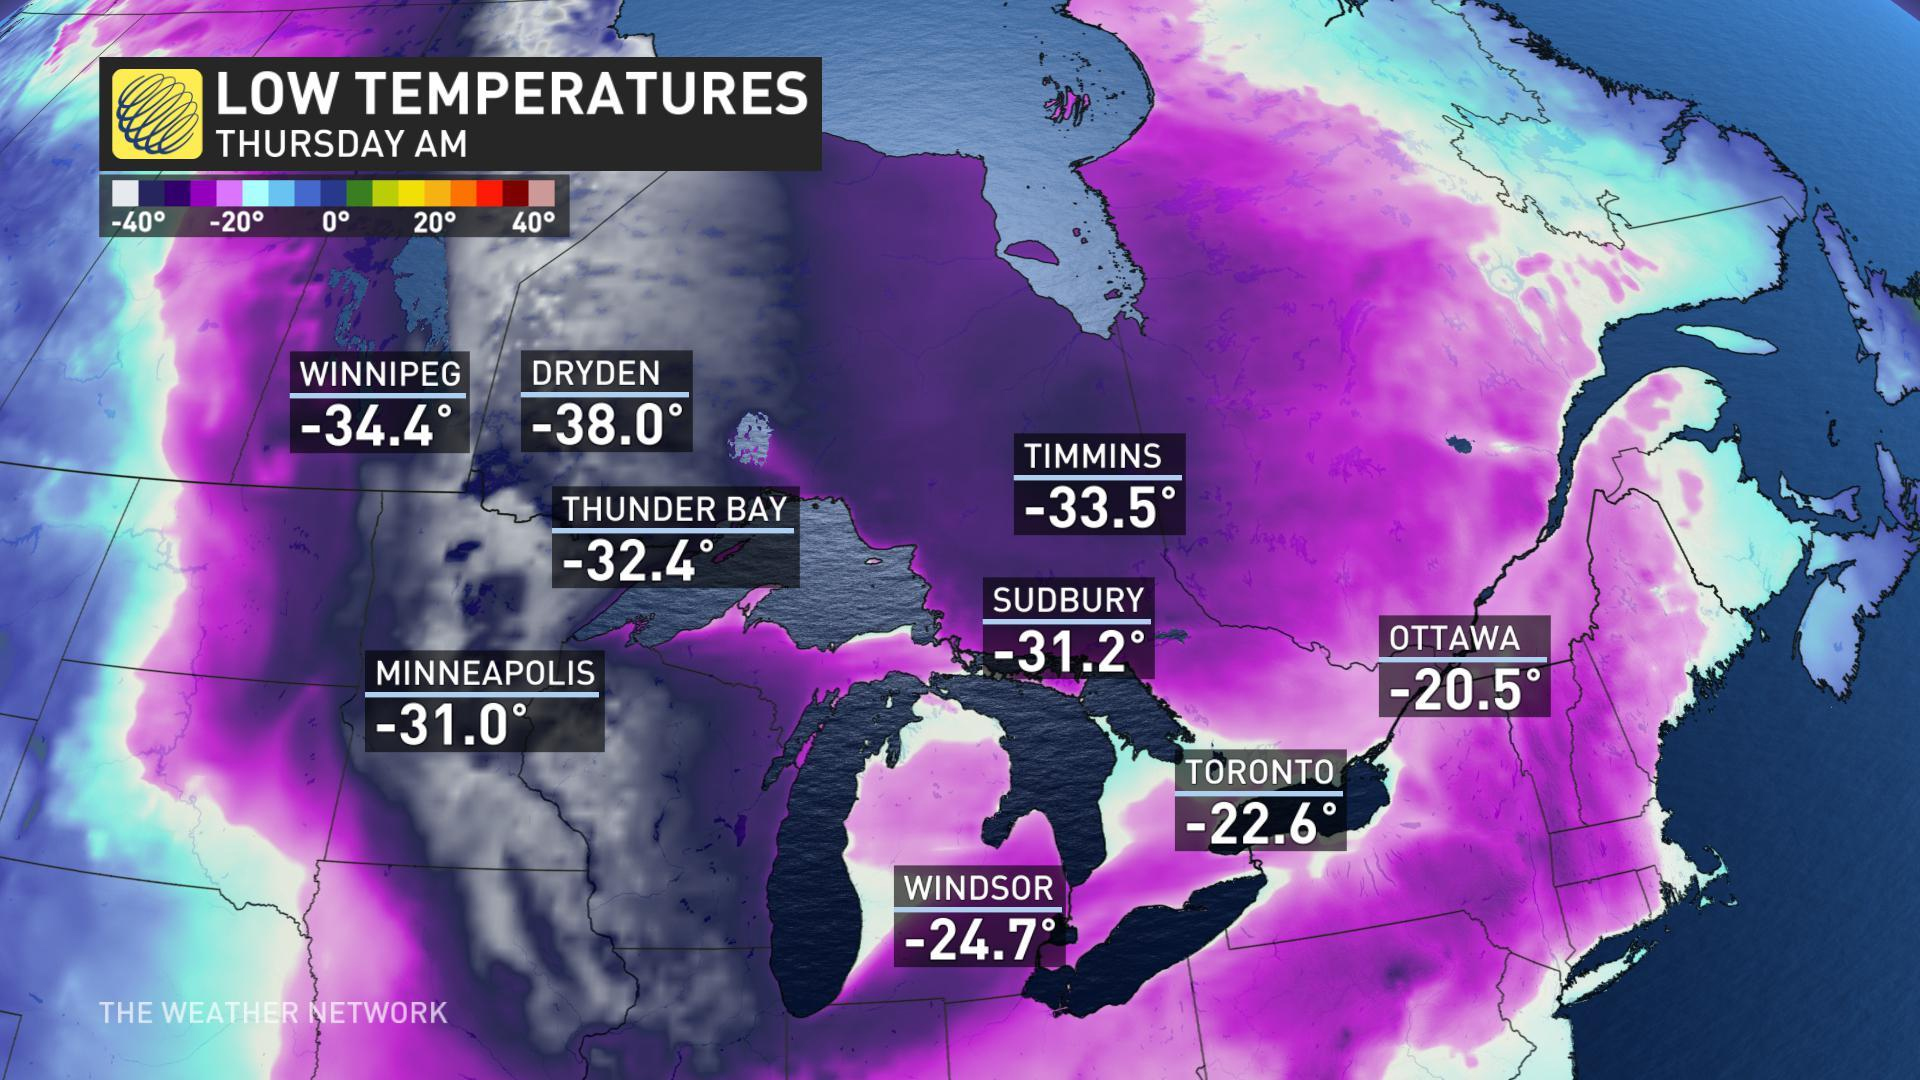 News - Polar vortex rattles Canada, US with frost quakes. See why ...